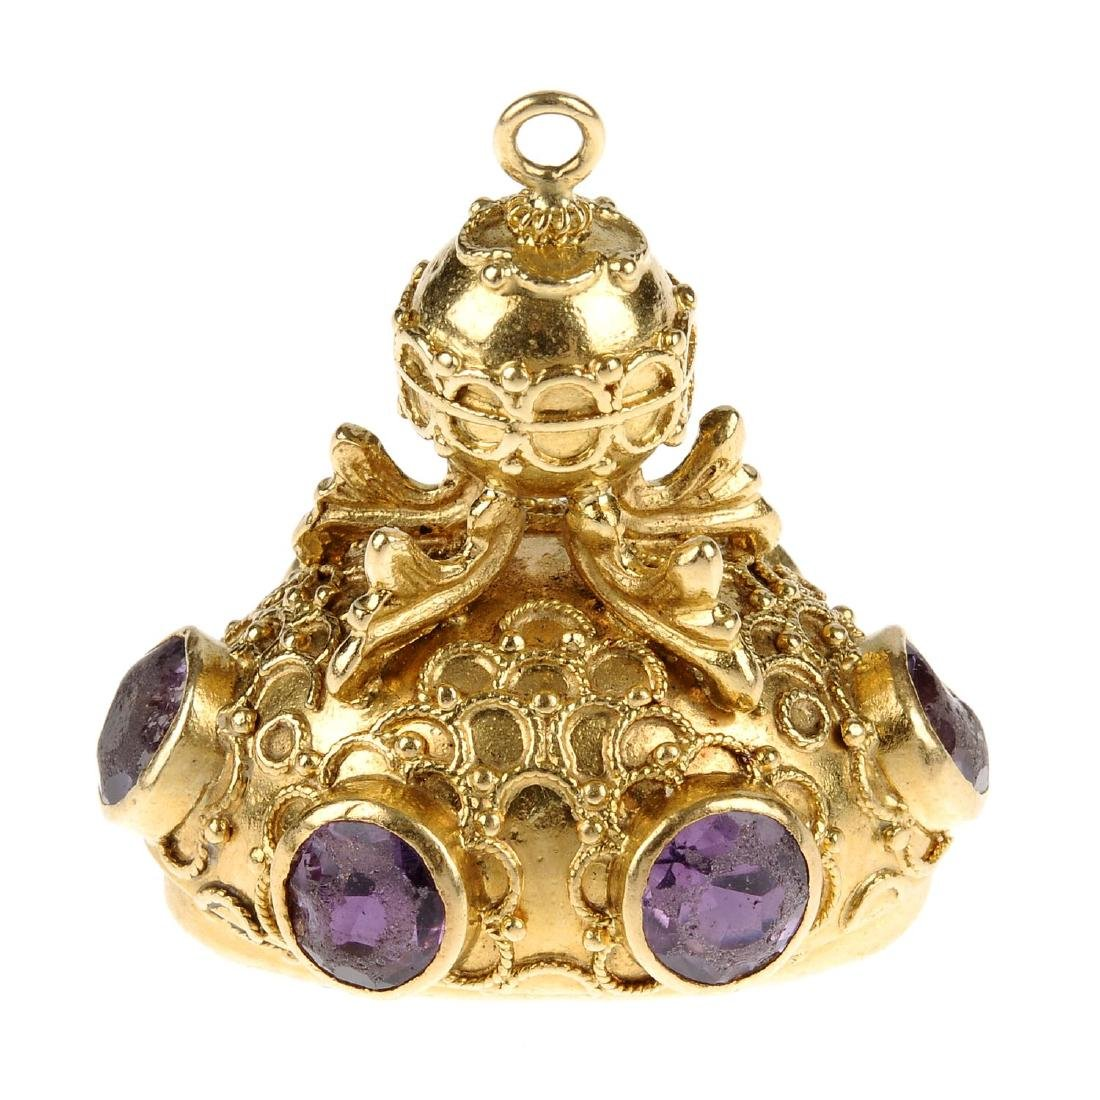 An amethyst fob. The oval-shape amethyst, to the